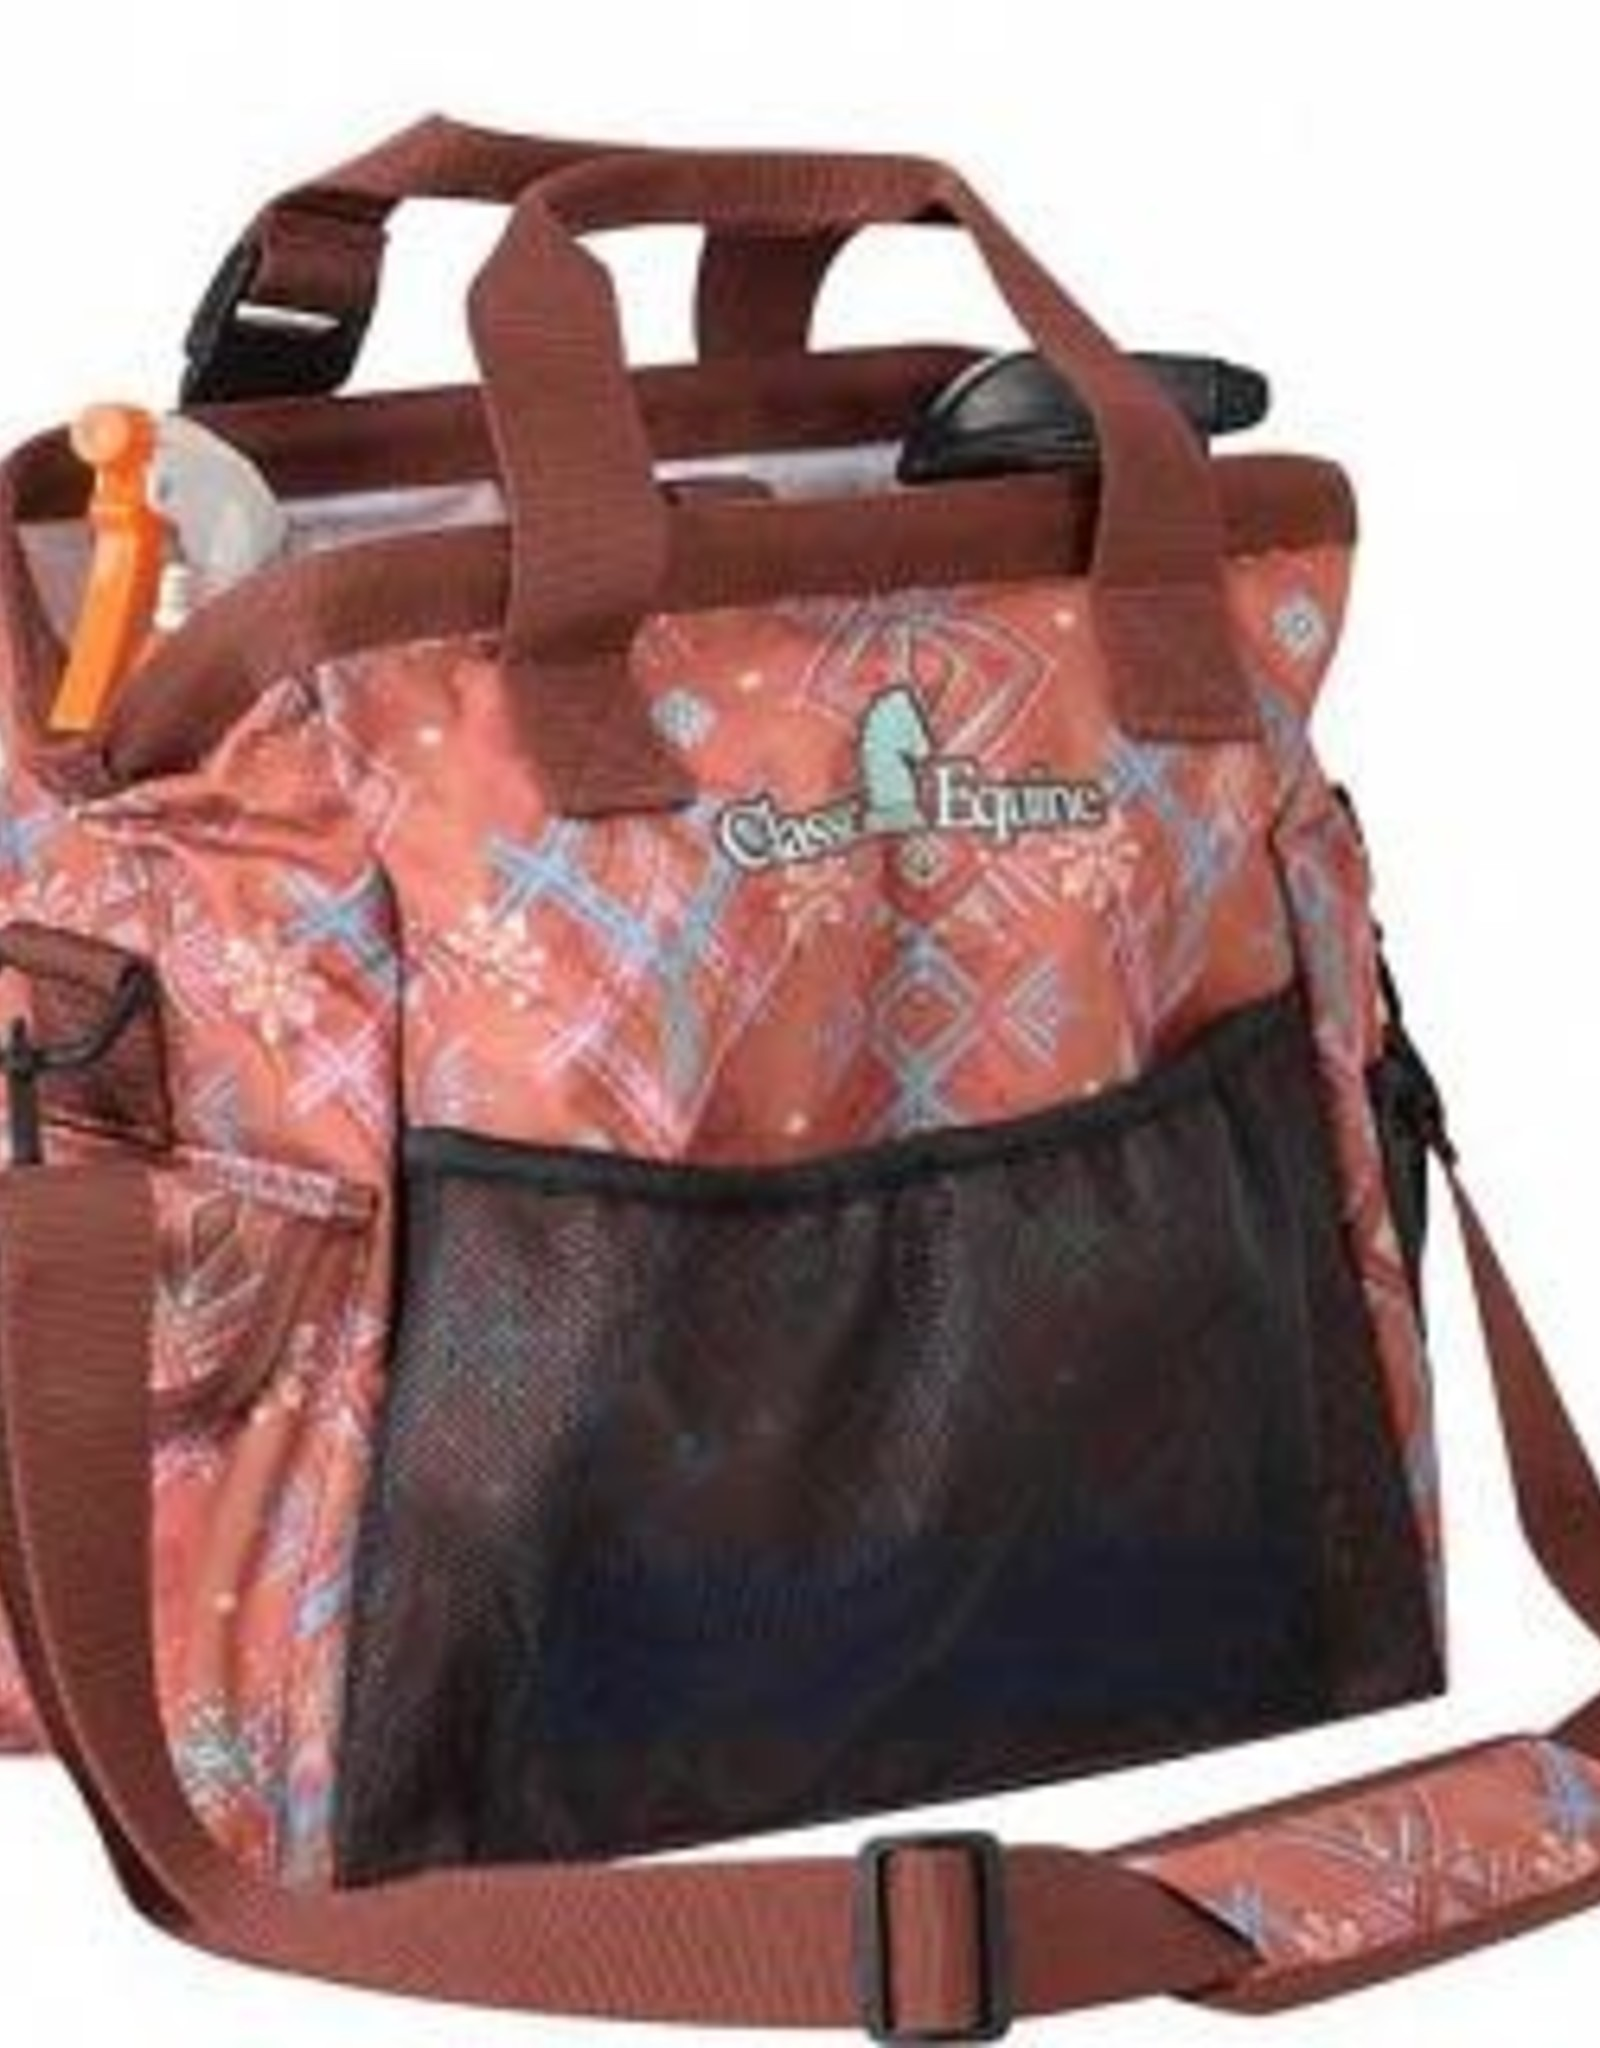 CLASSIC EQUINE GROOM TOTE